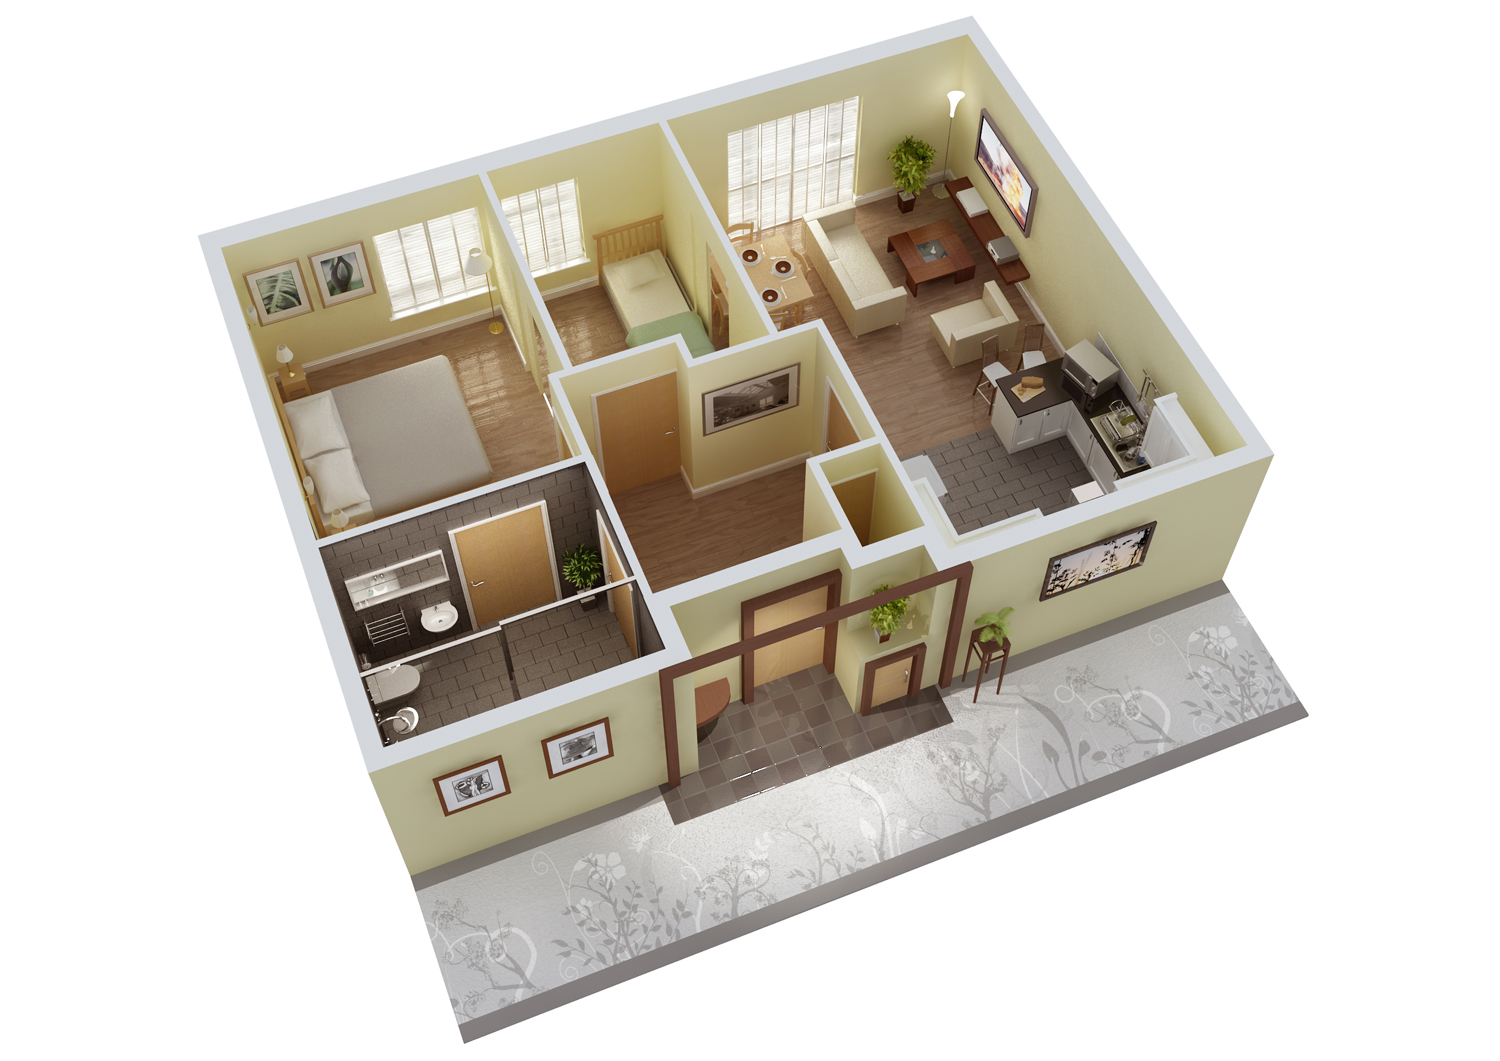 Mathematics resources project 3d floor plan Home building plans